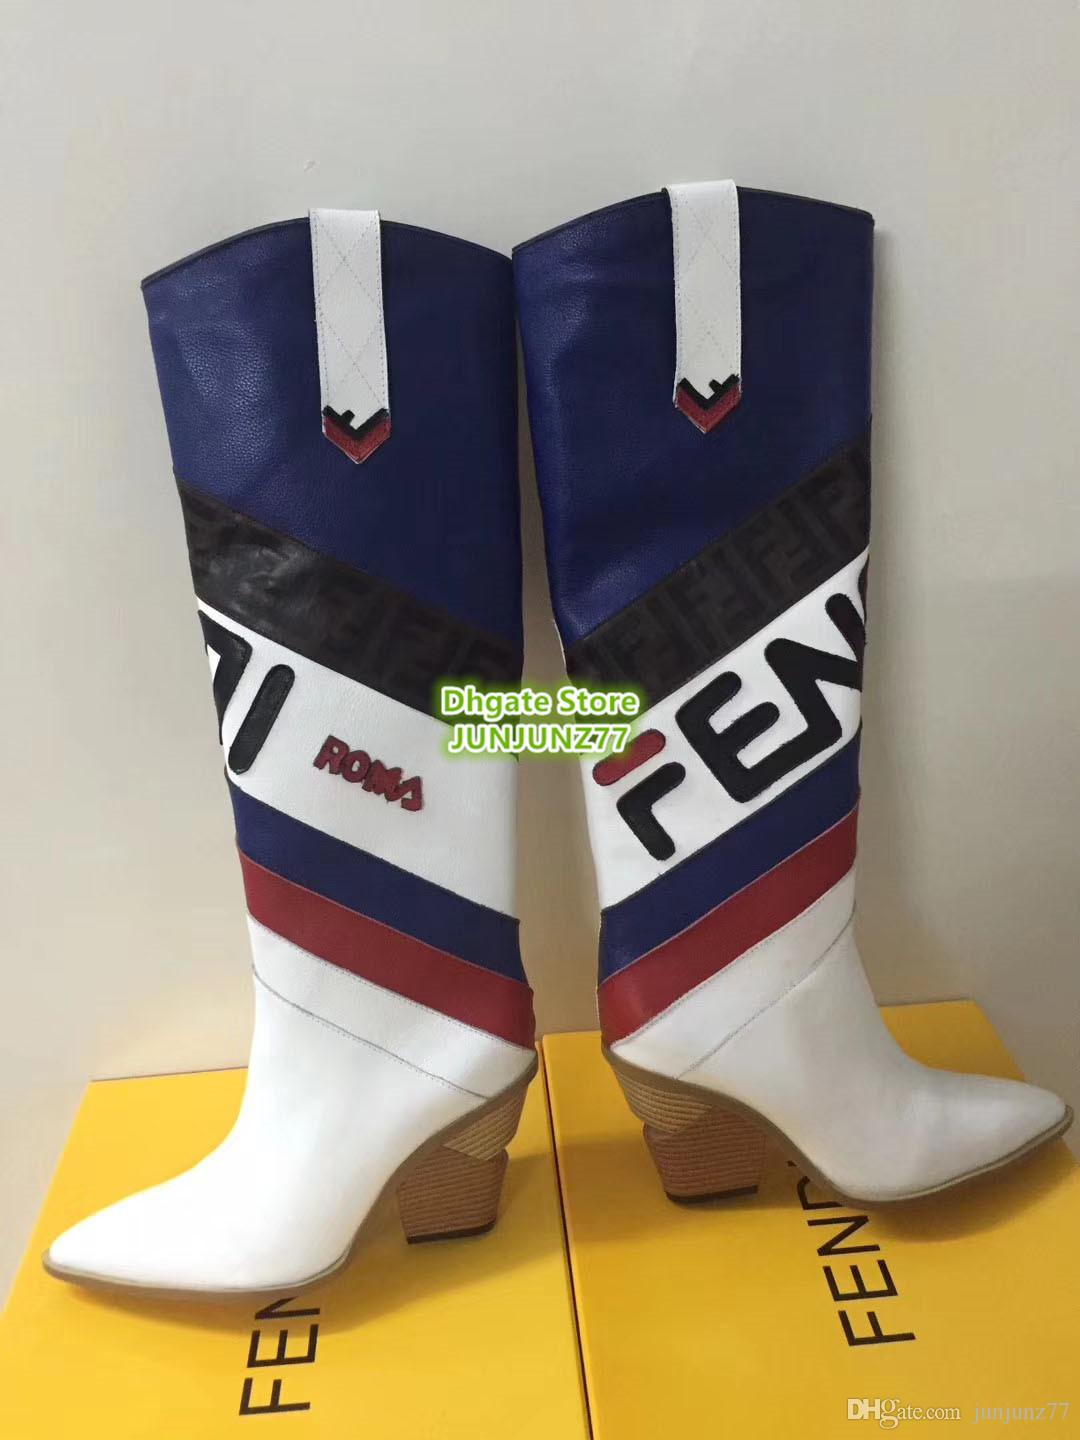 045881e4efc6 Multicolored Leather Boots Pointed Toe Cowboy Boots Geometric Cut ...